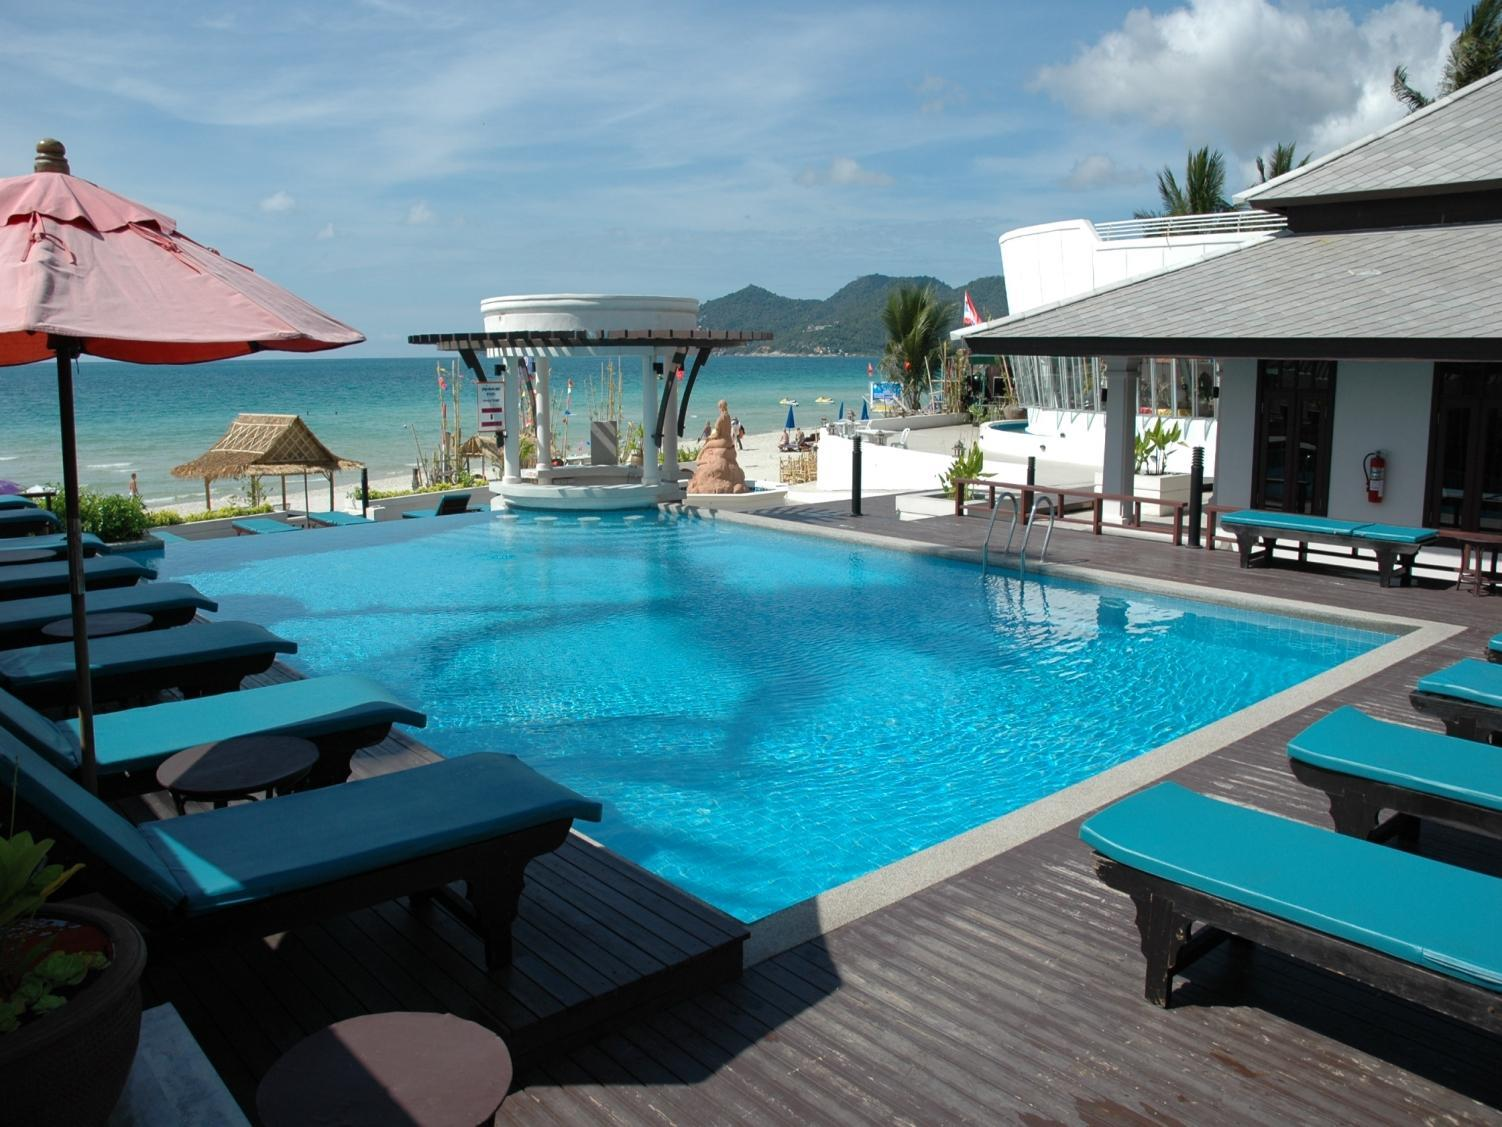 Al 39 s resort chaweng koh samui thailand great discounted rates for Hotels koh samui